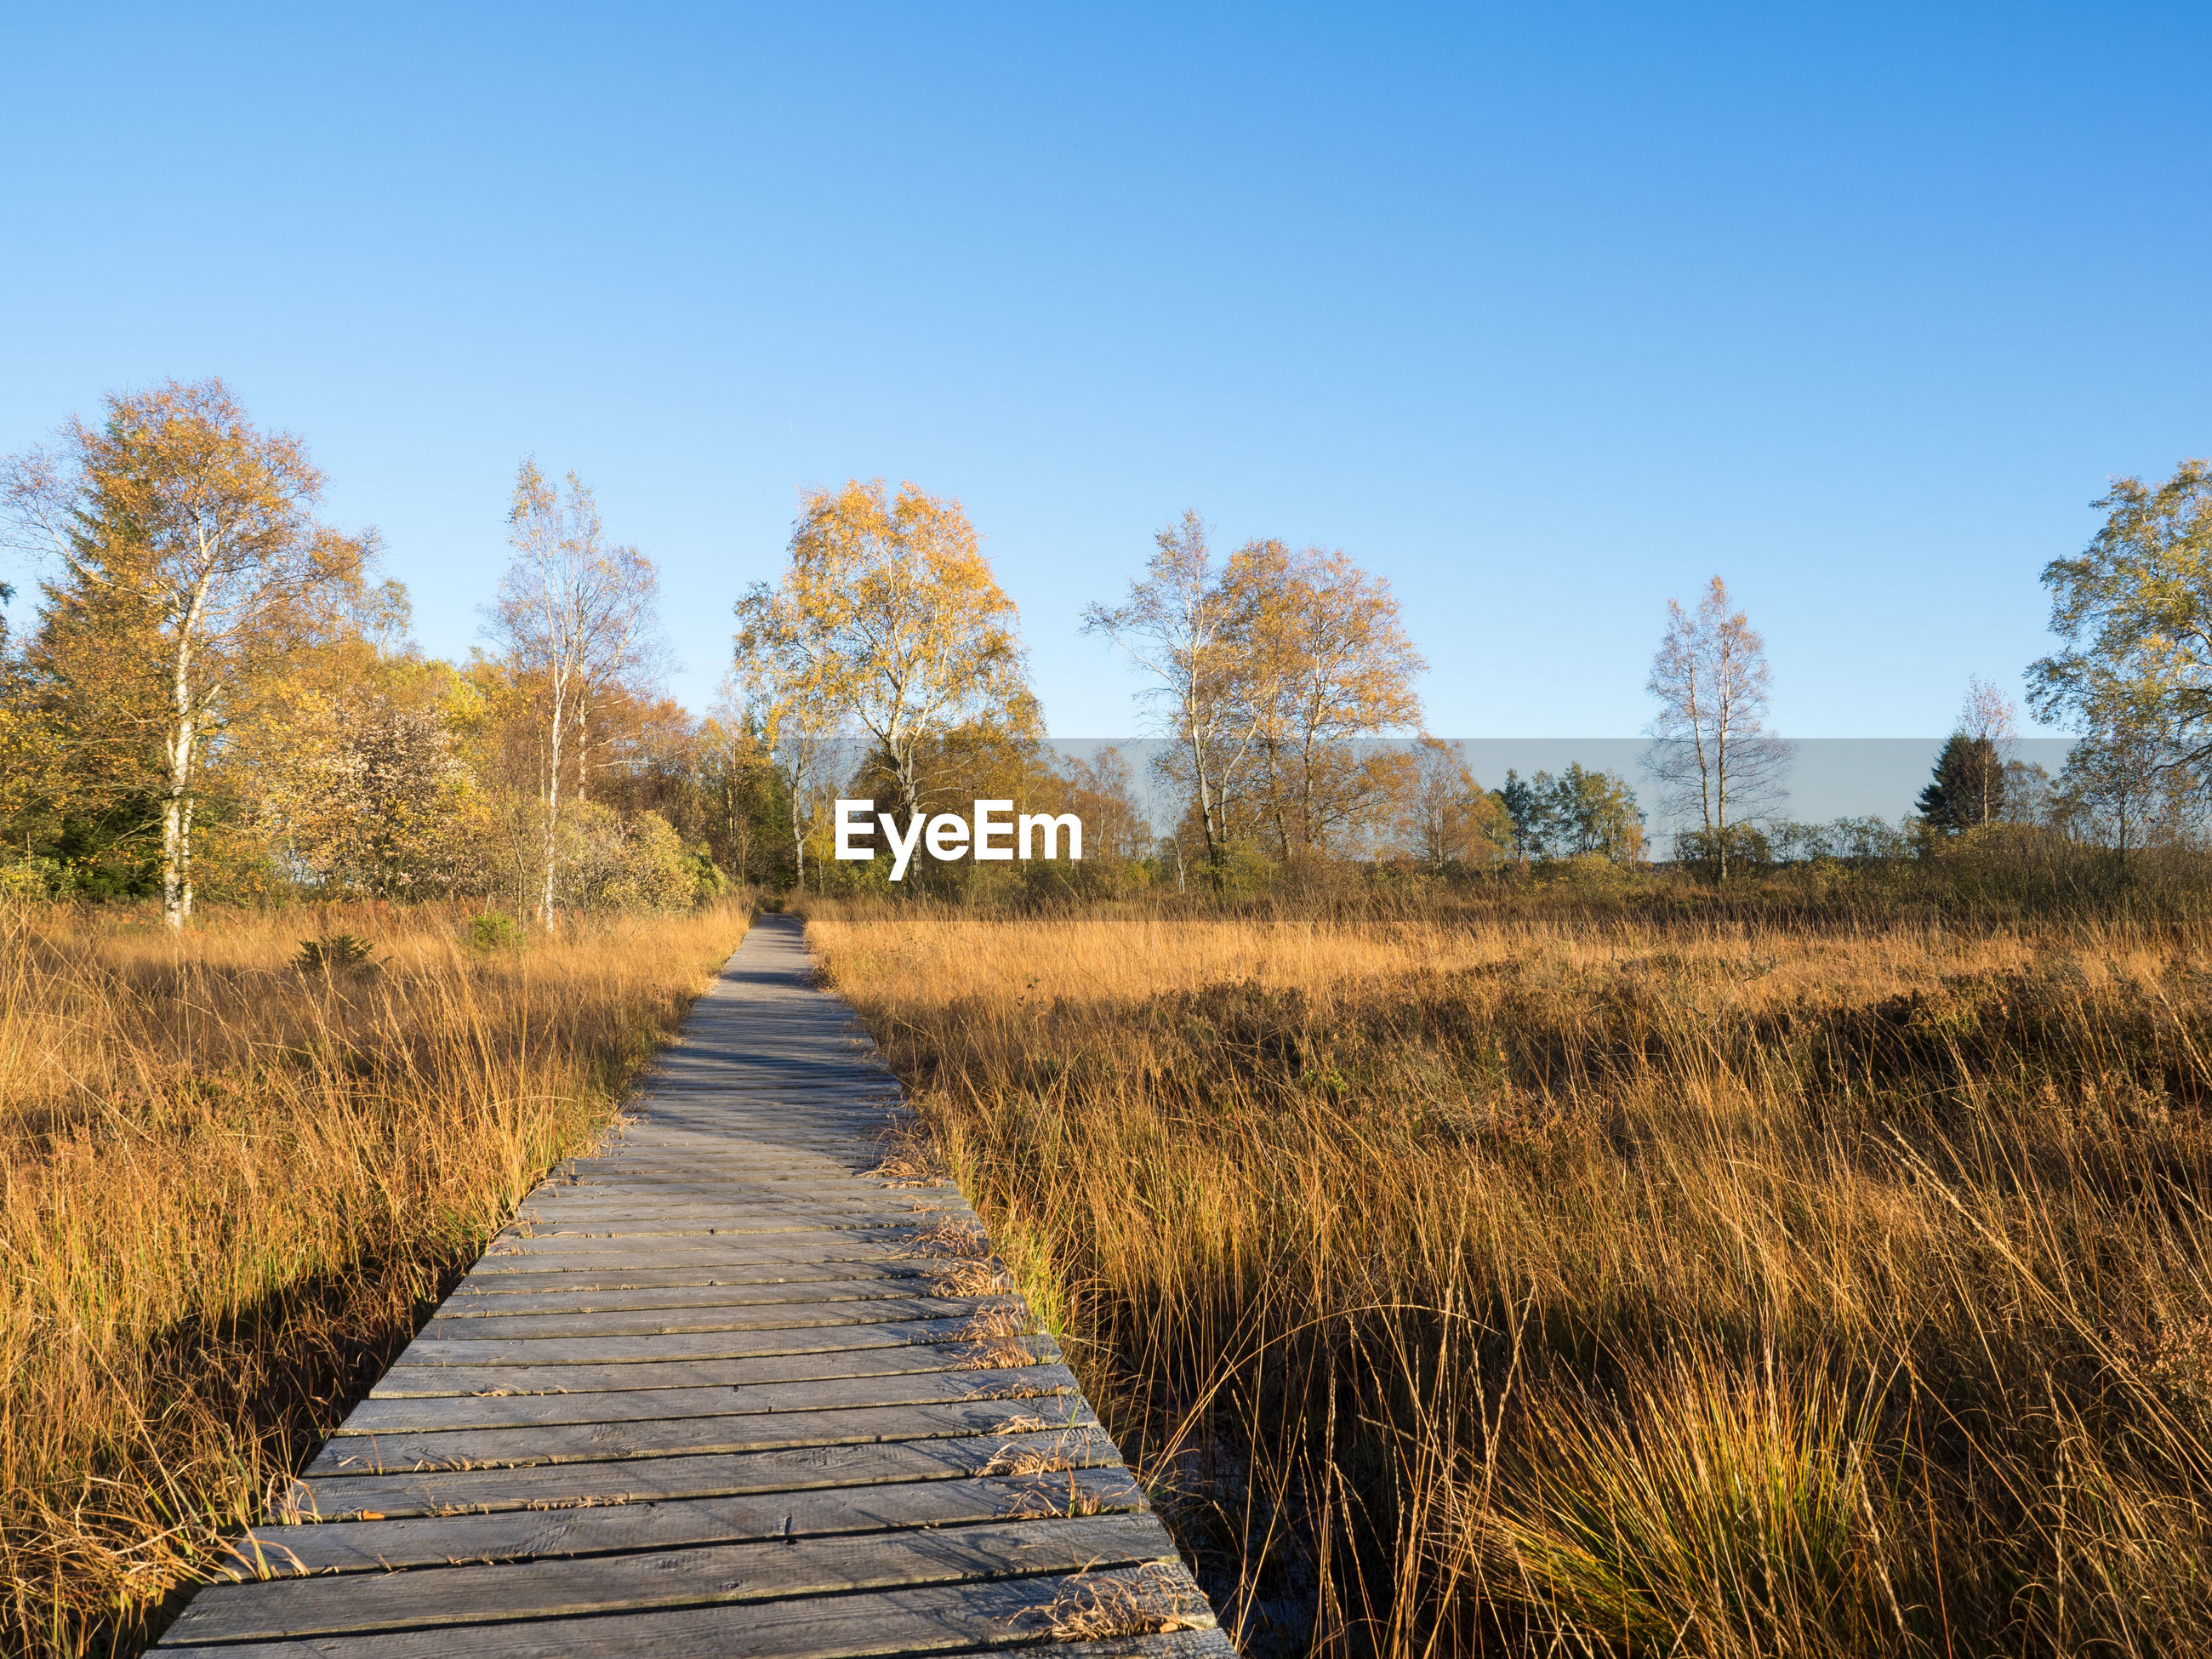 BOARDWALK AMIDST TREES AGAINST SKY DURING AUTUMN